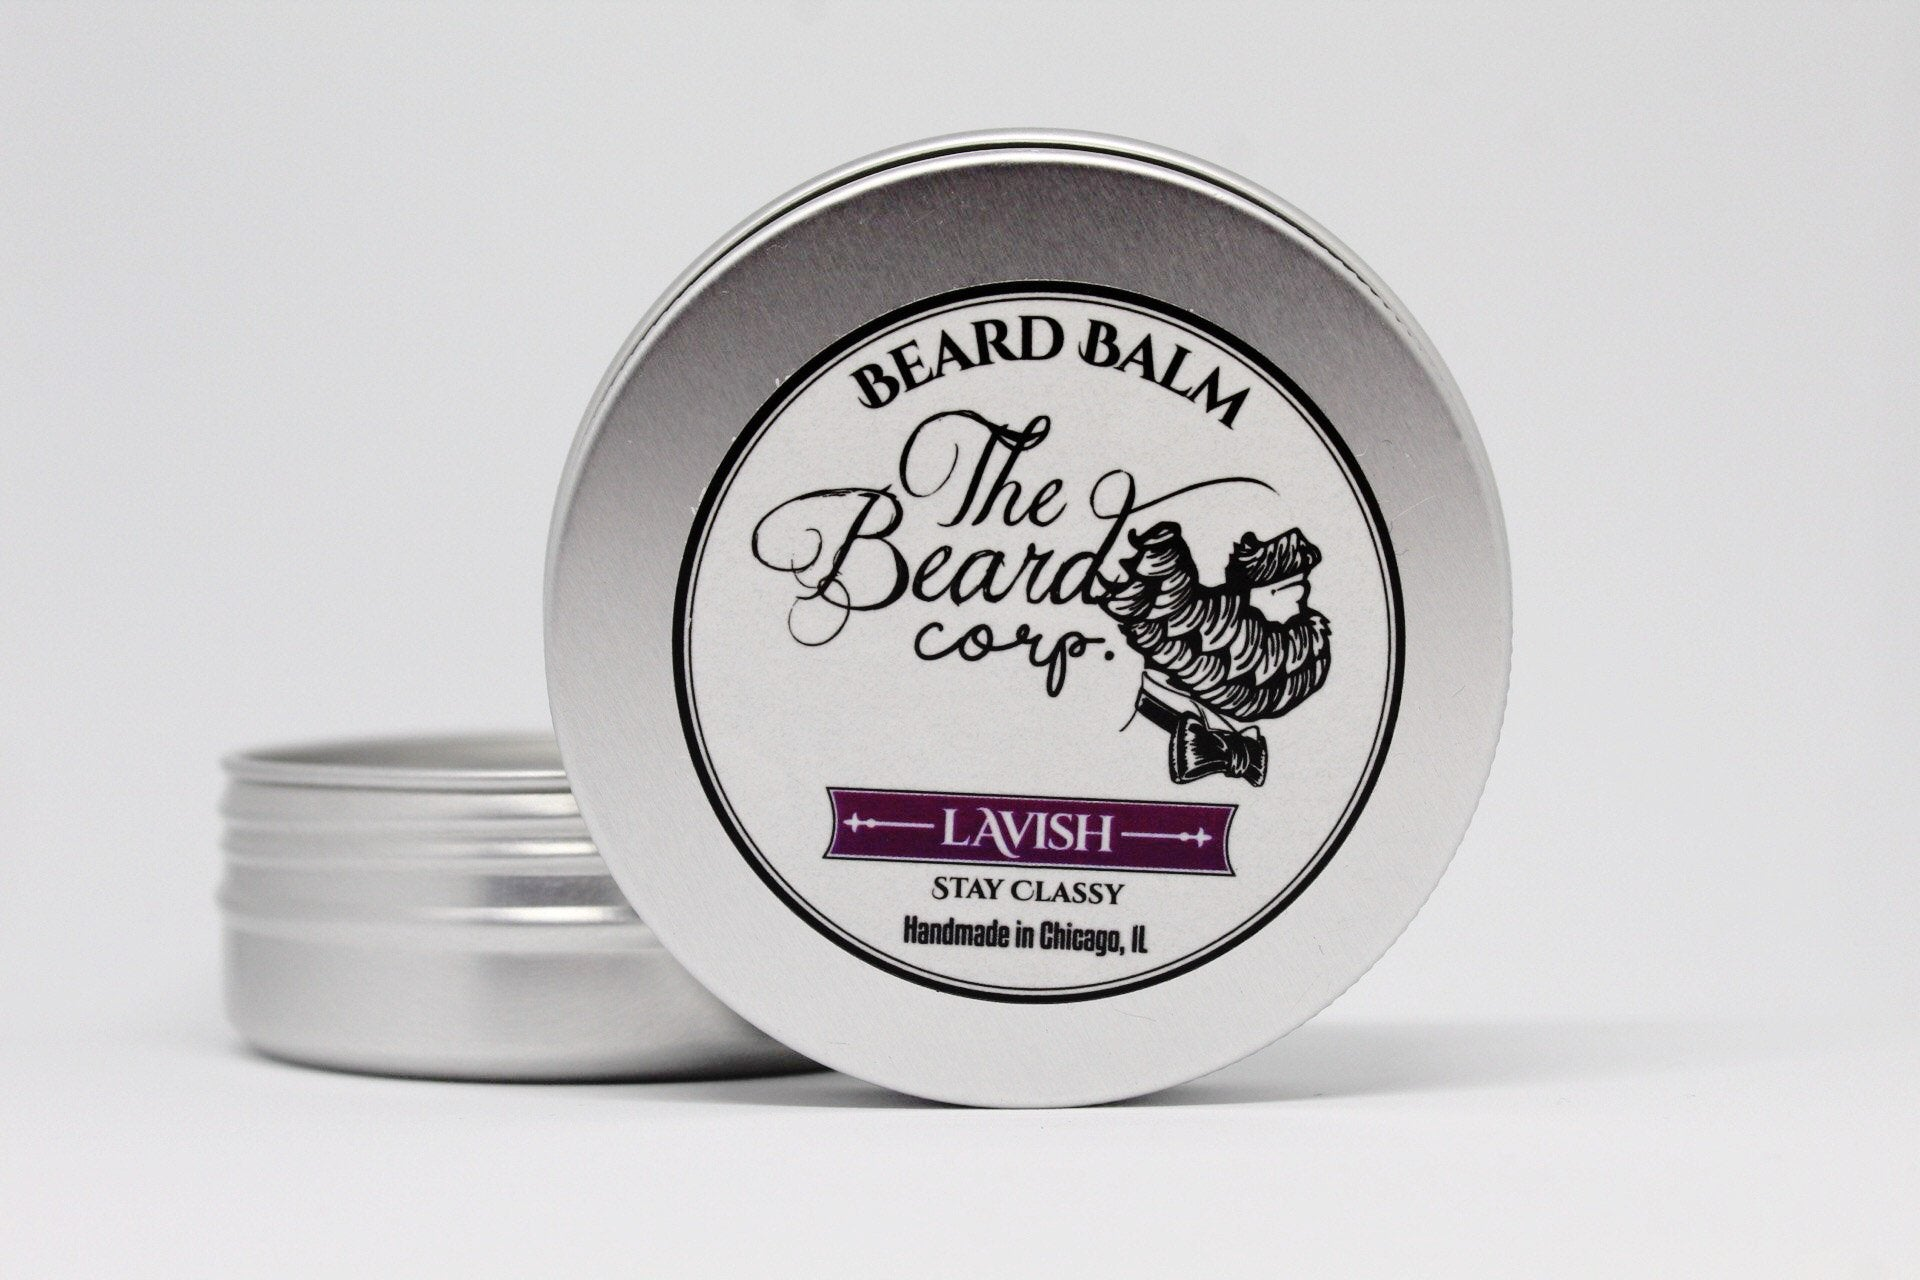 Lavish Beard and Mustache Balm